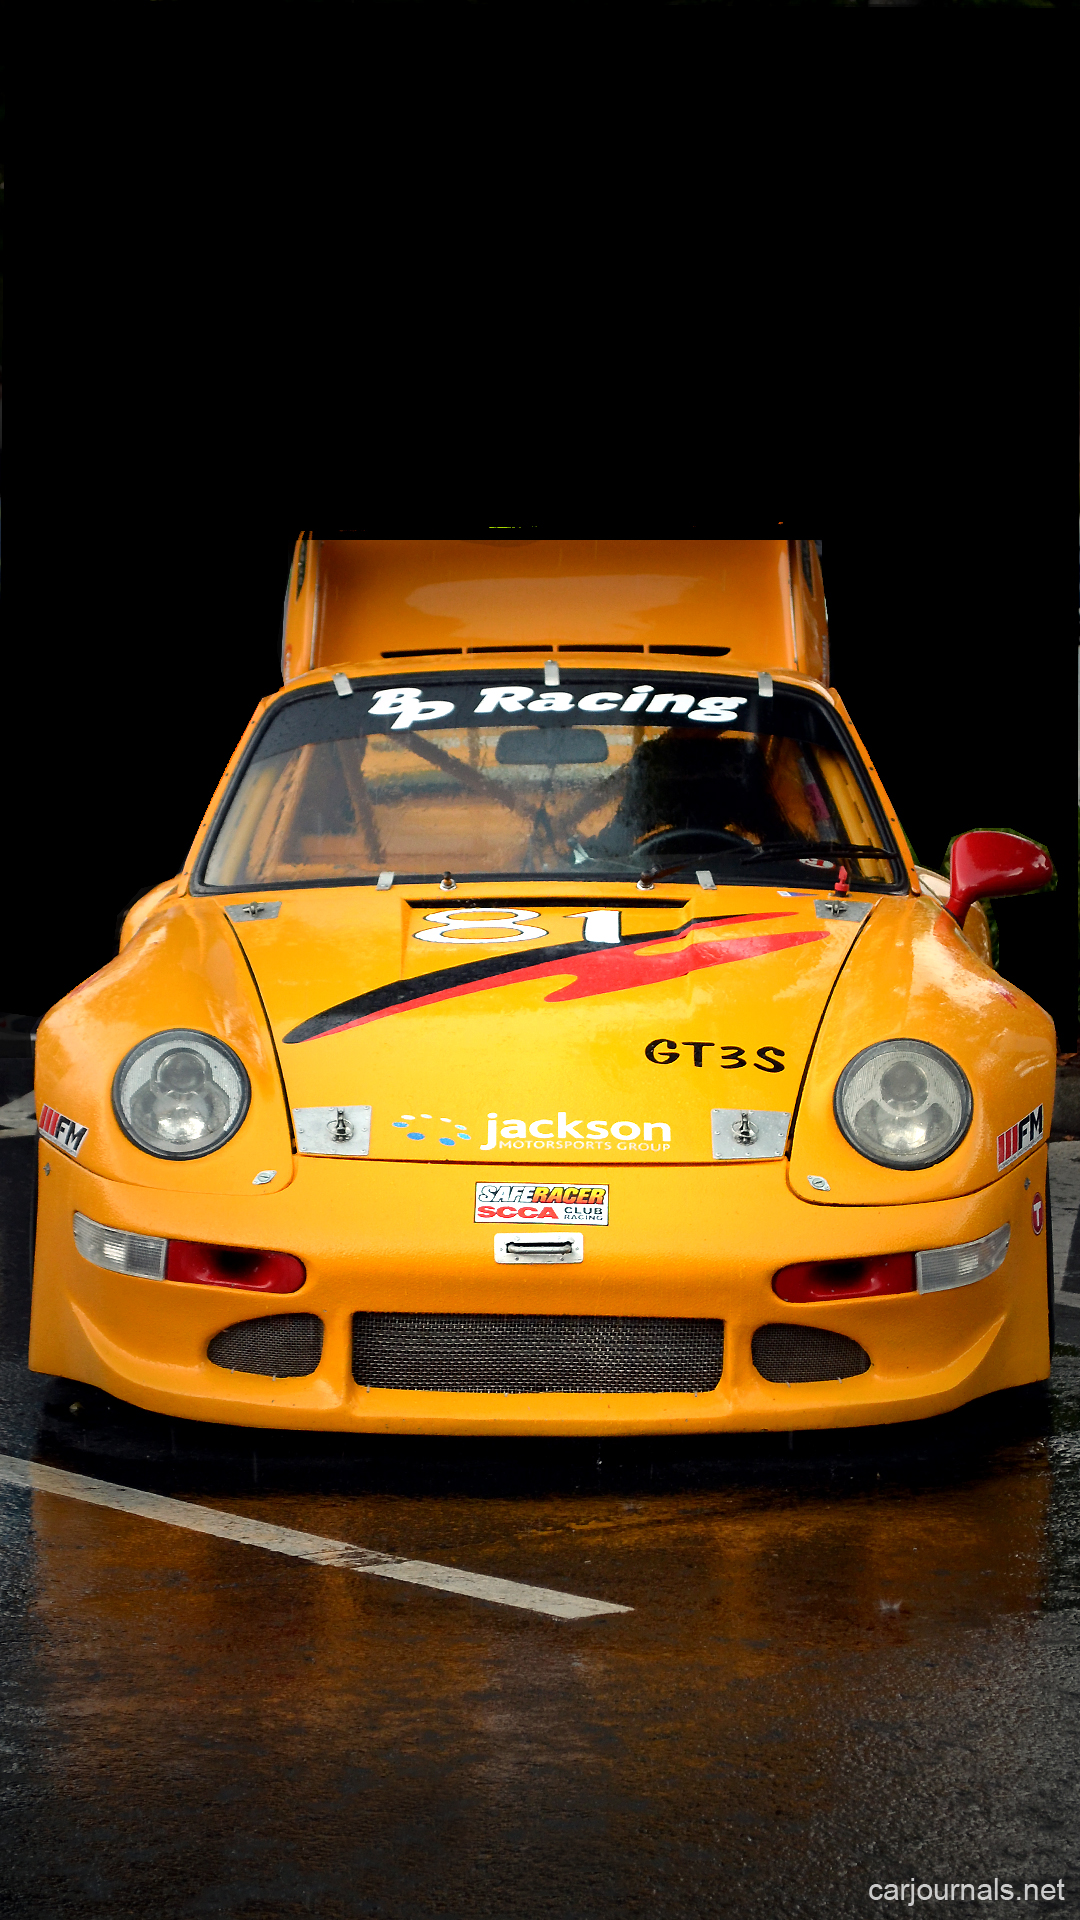 Yellow Porsche GT3S iPhone Wallpaper - Car journals